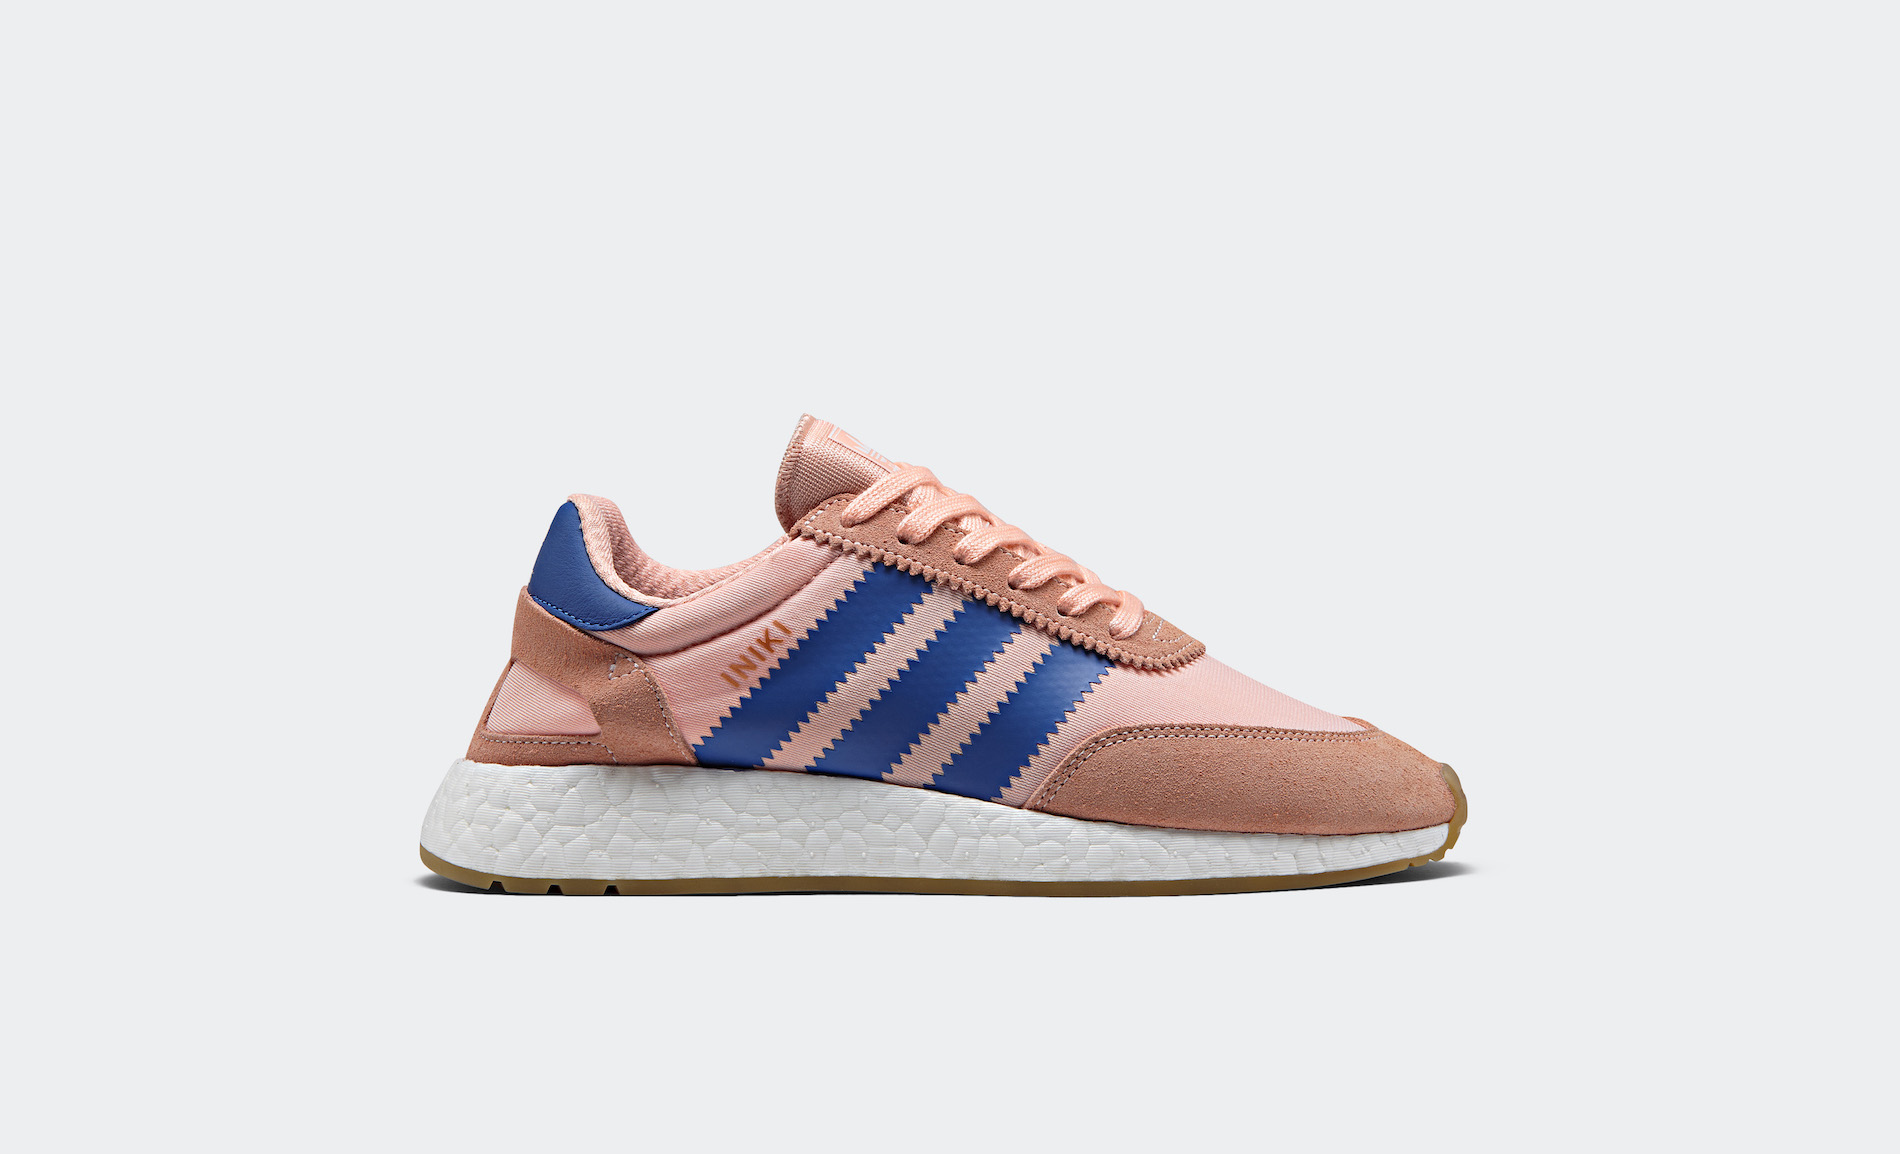 adidas iniki runner iniki pack 2 - WearTesters